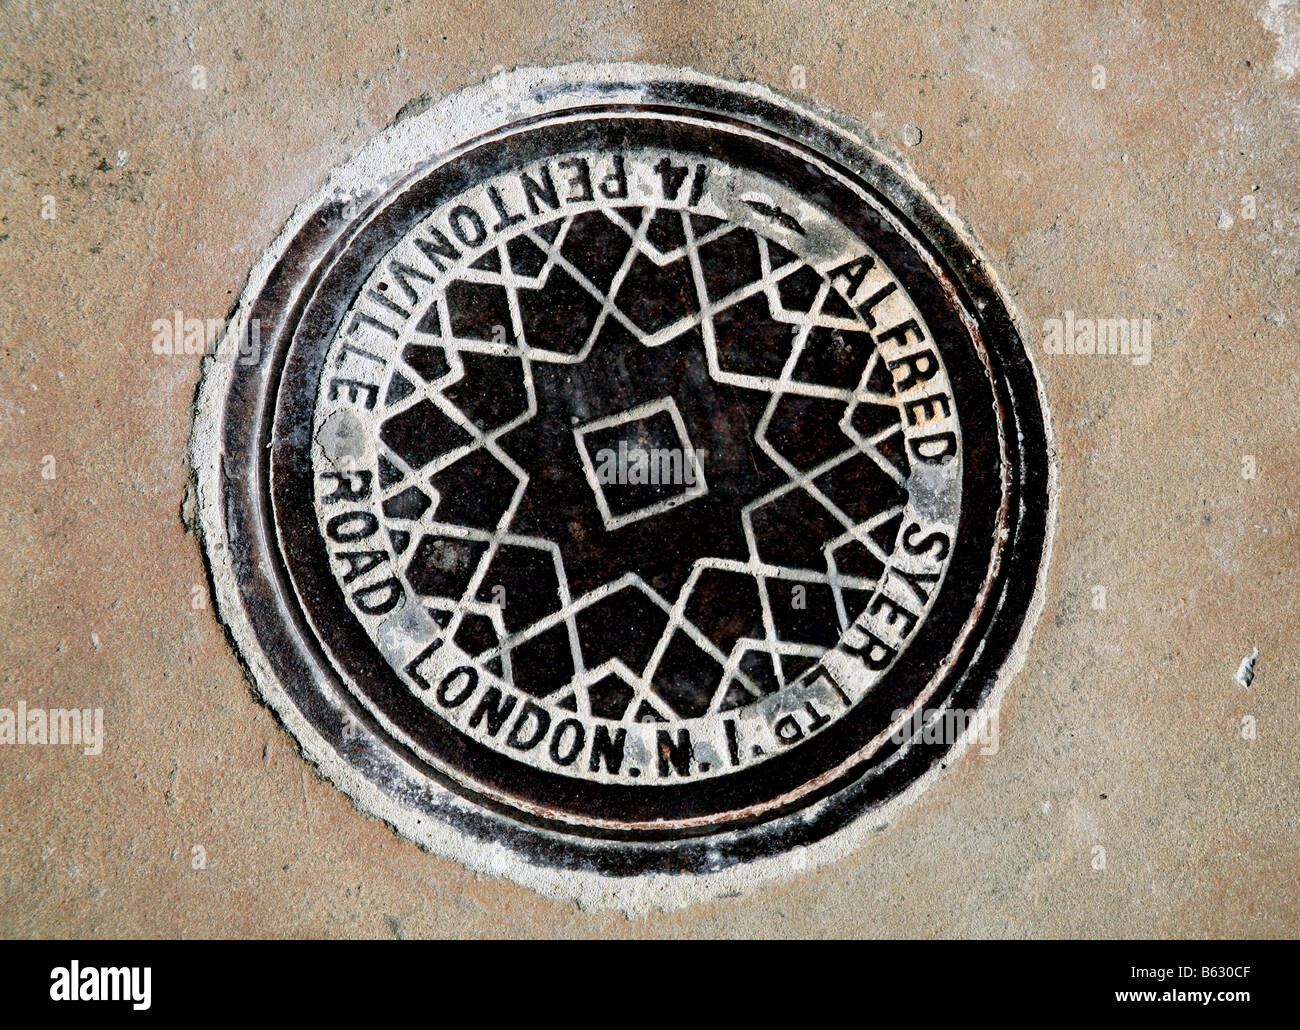 Coal hole cover in London pavement - Stock Image